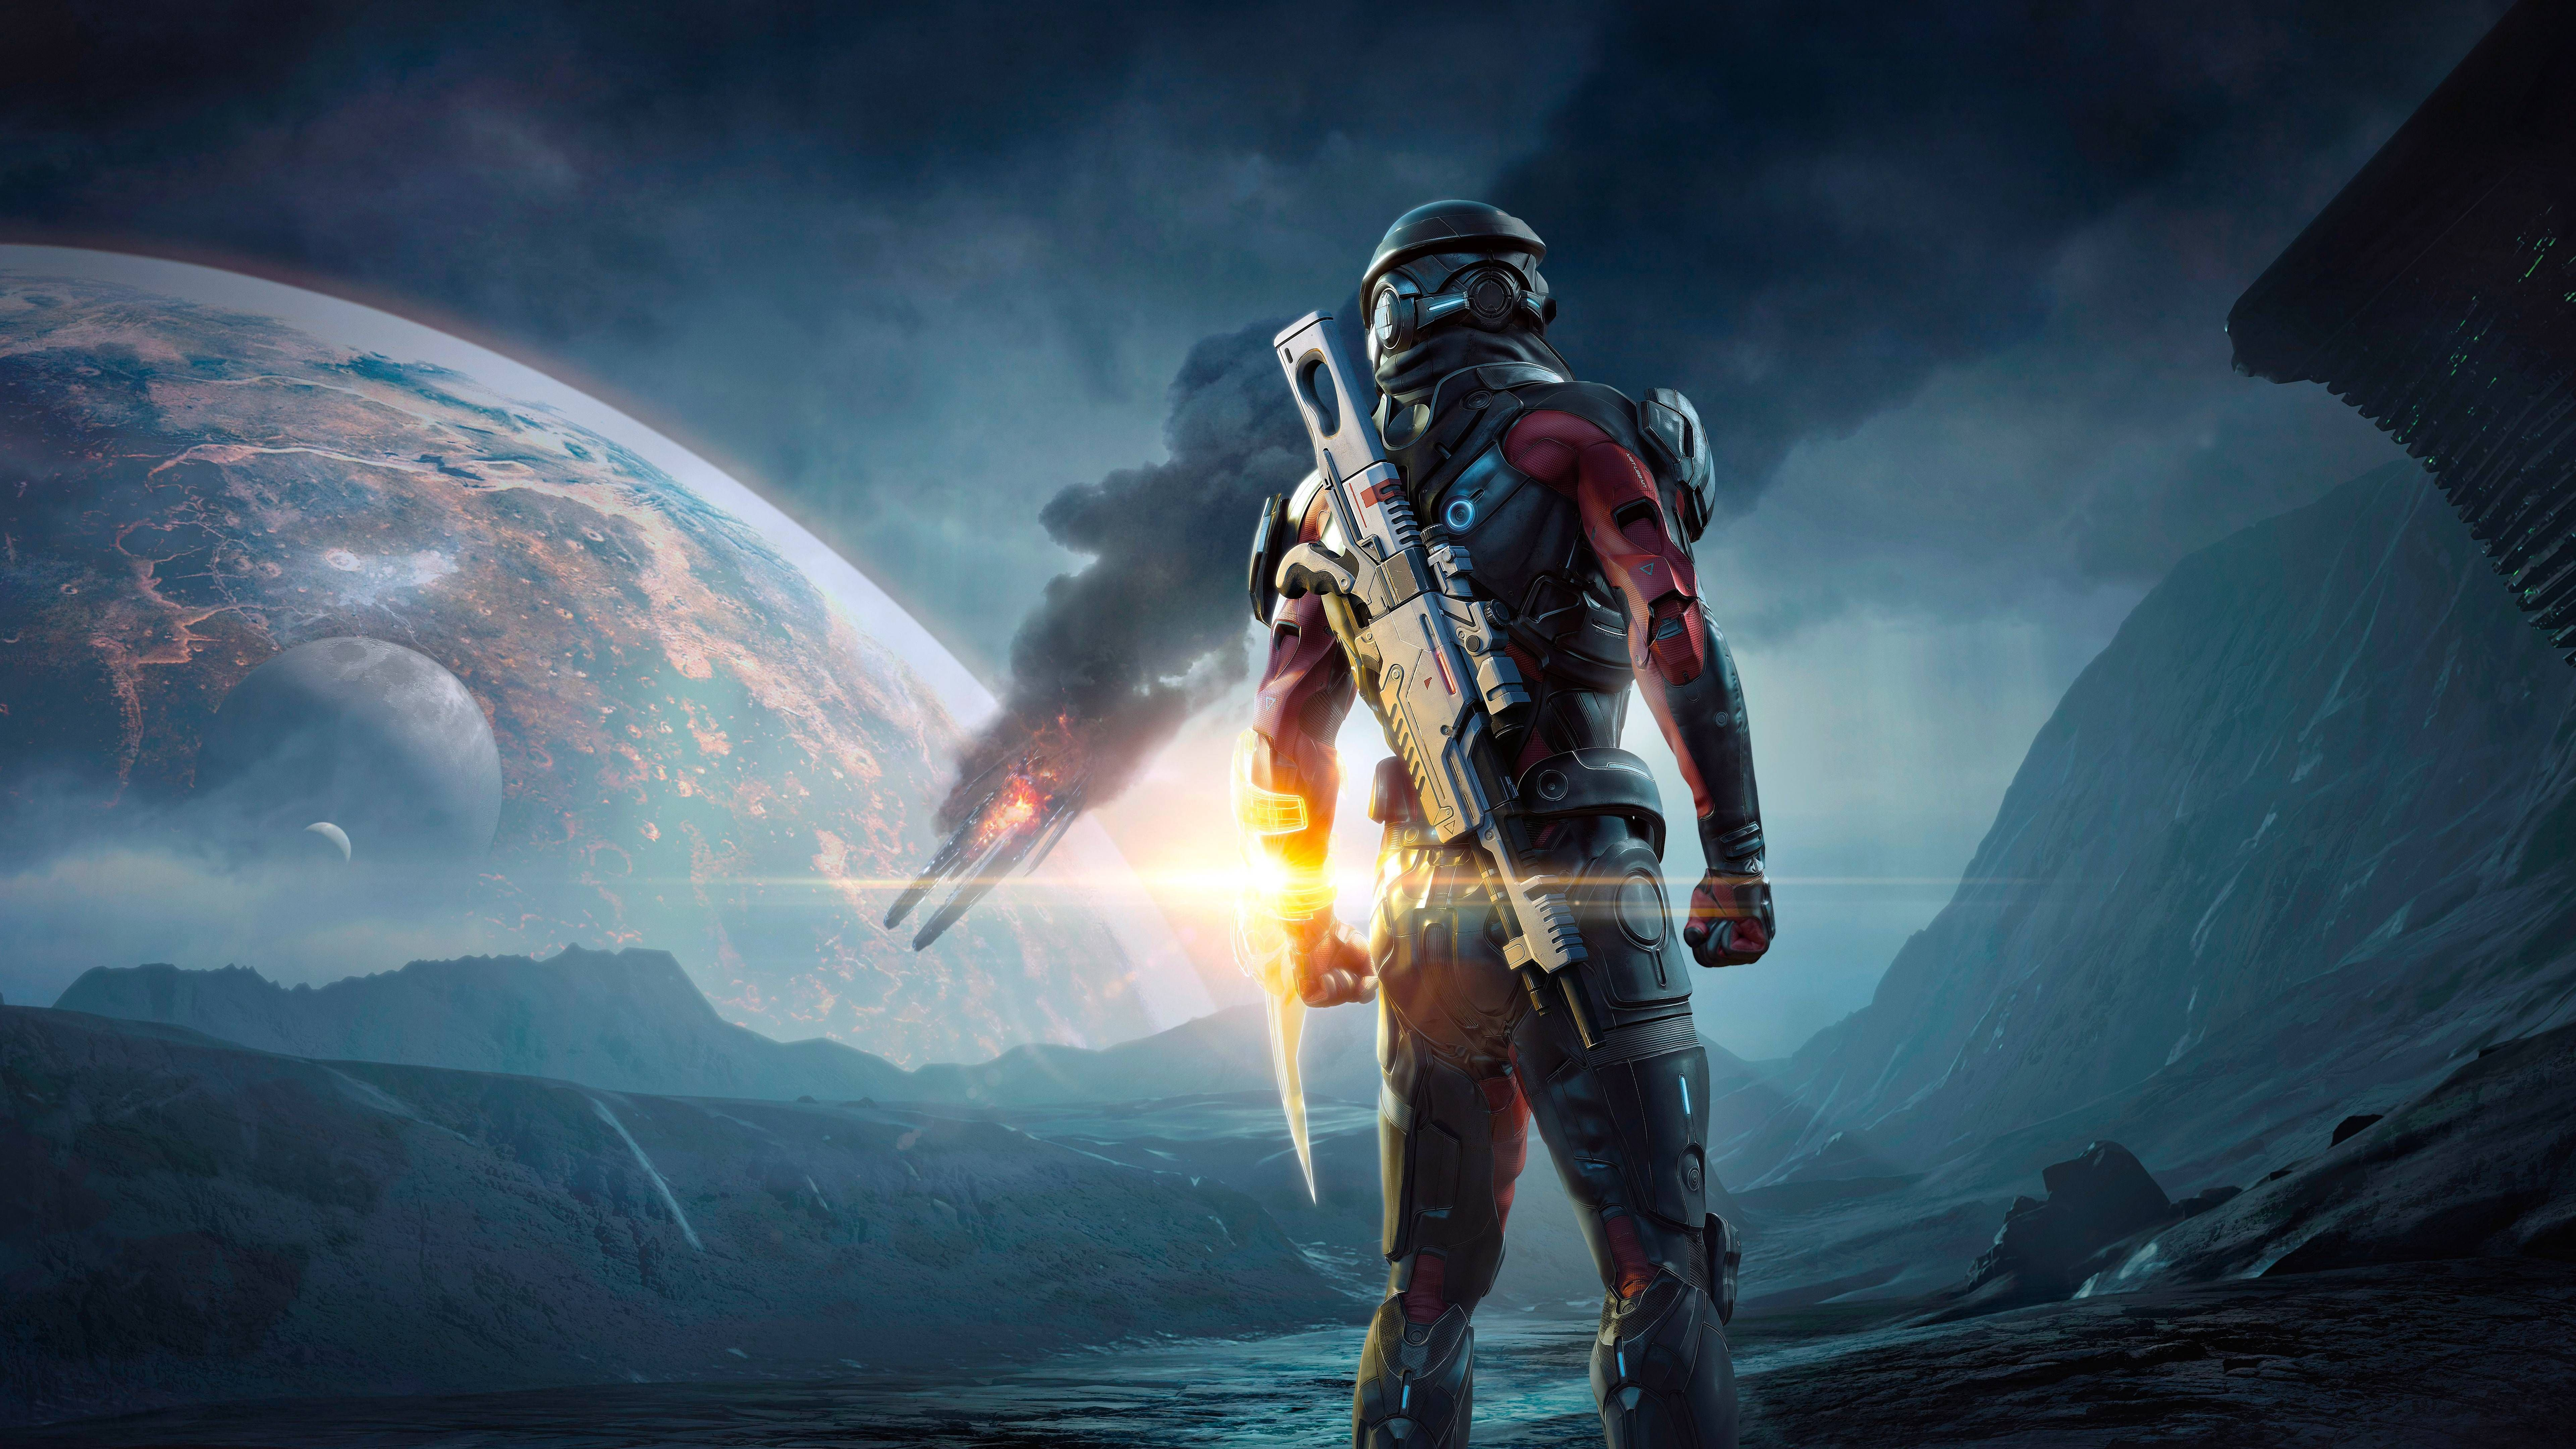 Mass Effect Andromeda 4K Wallpaper ( 7680 4320